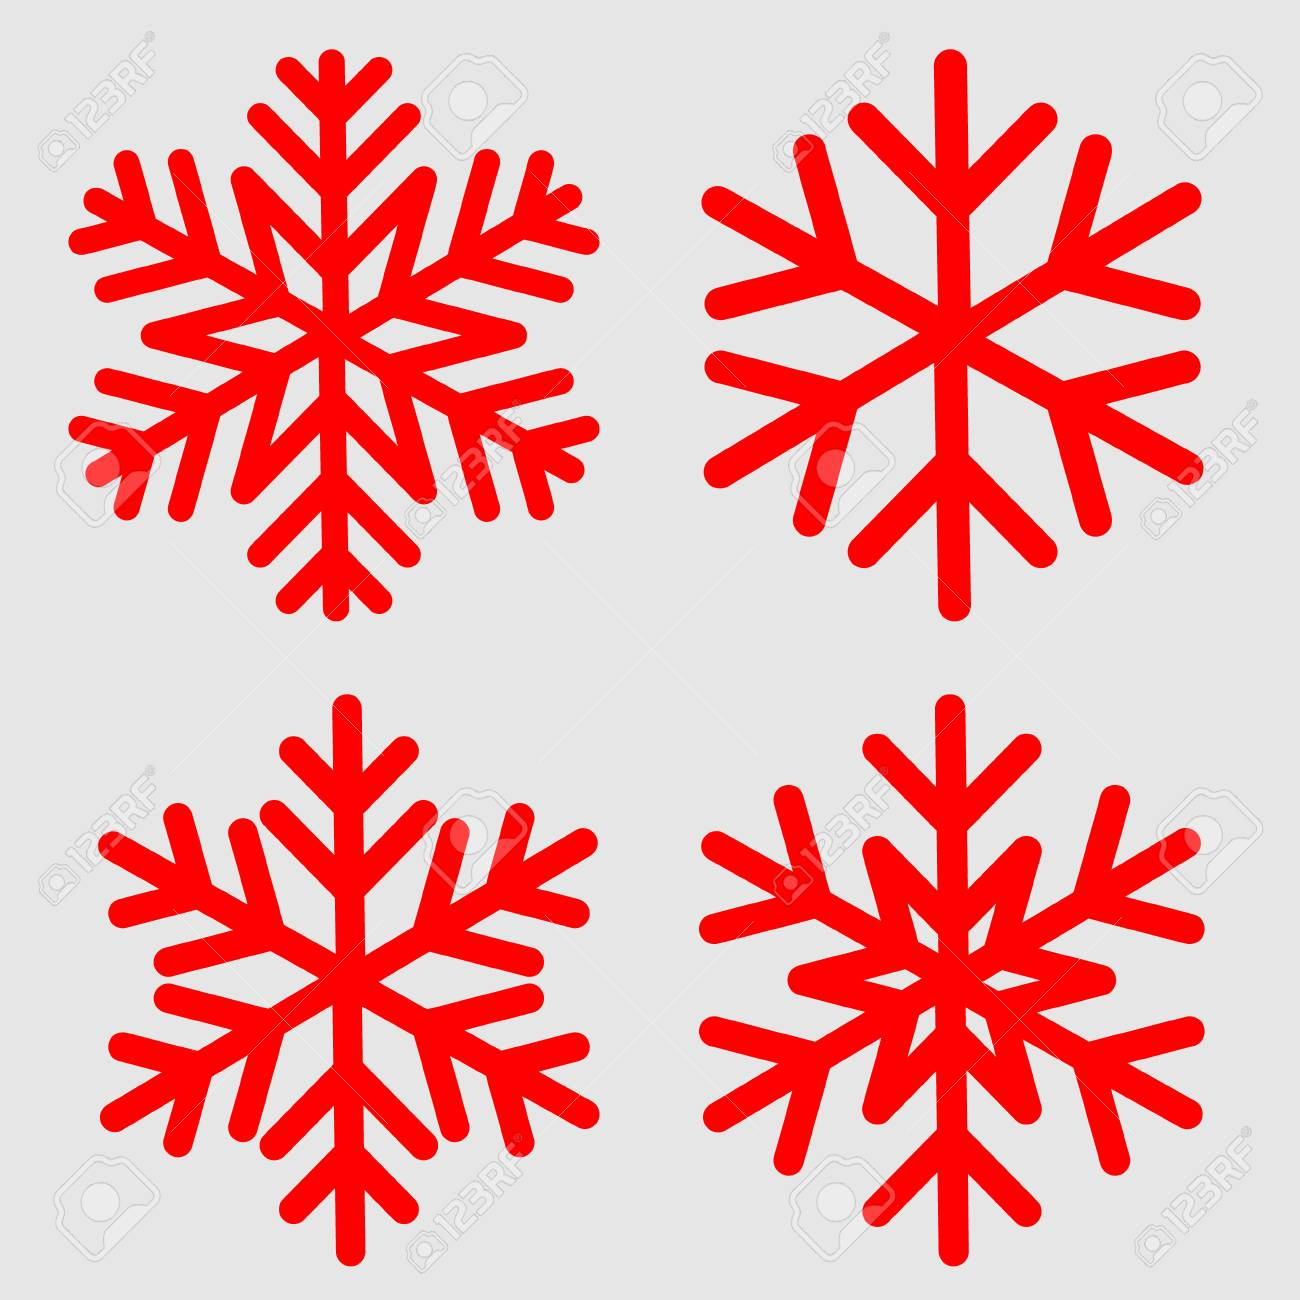 Snowflake Template | Vector Illustration Of Snowflake Template For Winter Holiday Cards